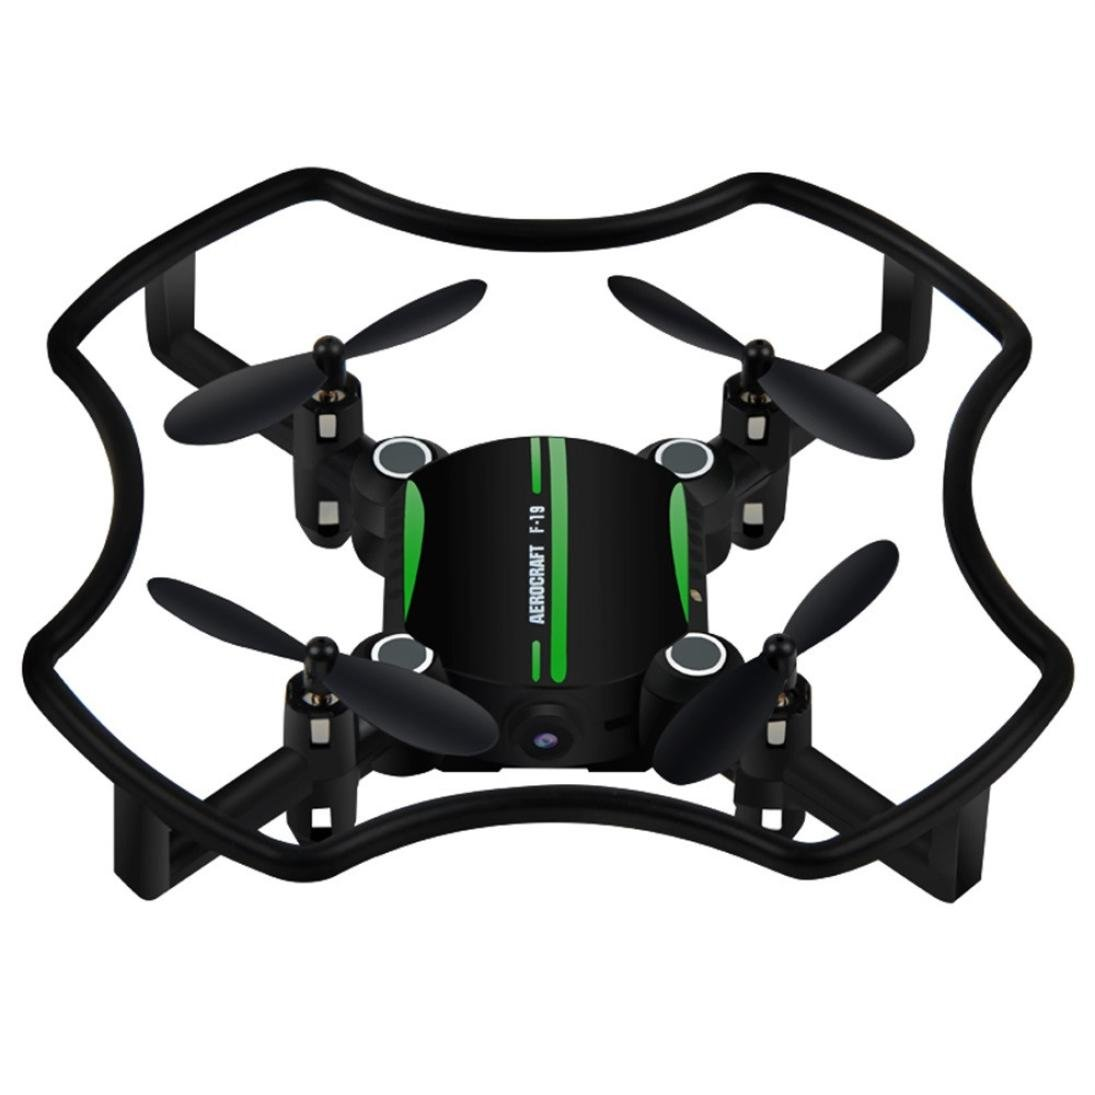 owill Mini Drone aititude Holdクアッドコプター2.4 G 4 CH 6軸RCヘリコプターwith LEDライト One Size グリーン OW112612GN B077R9VPSW グリーン グリーン